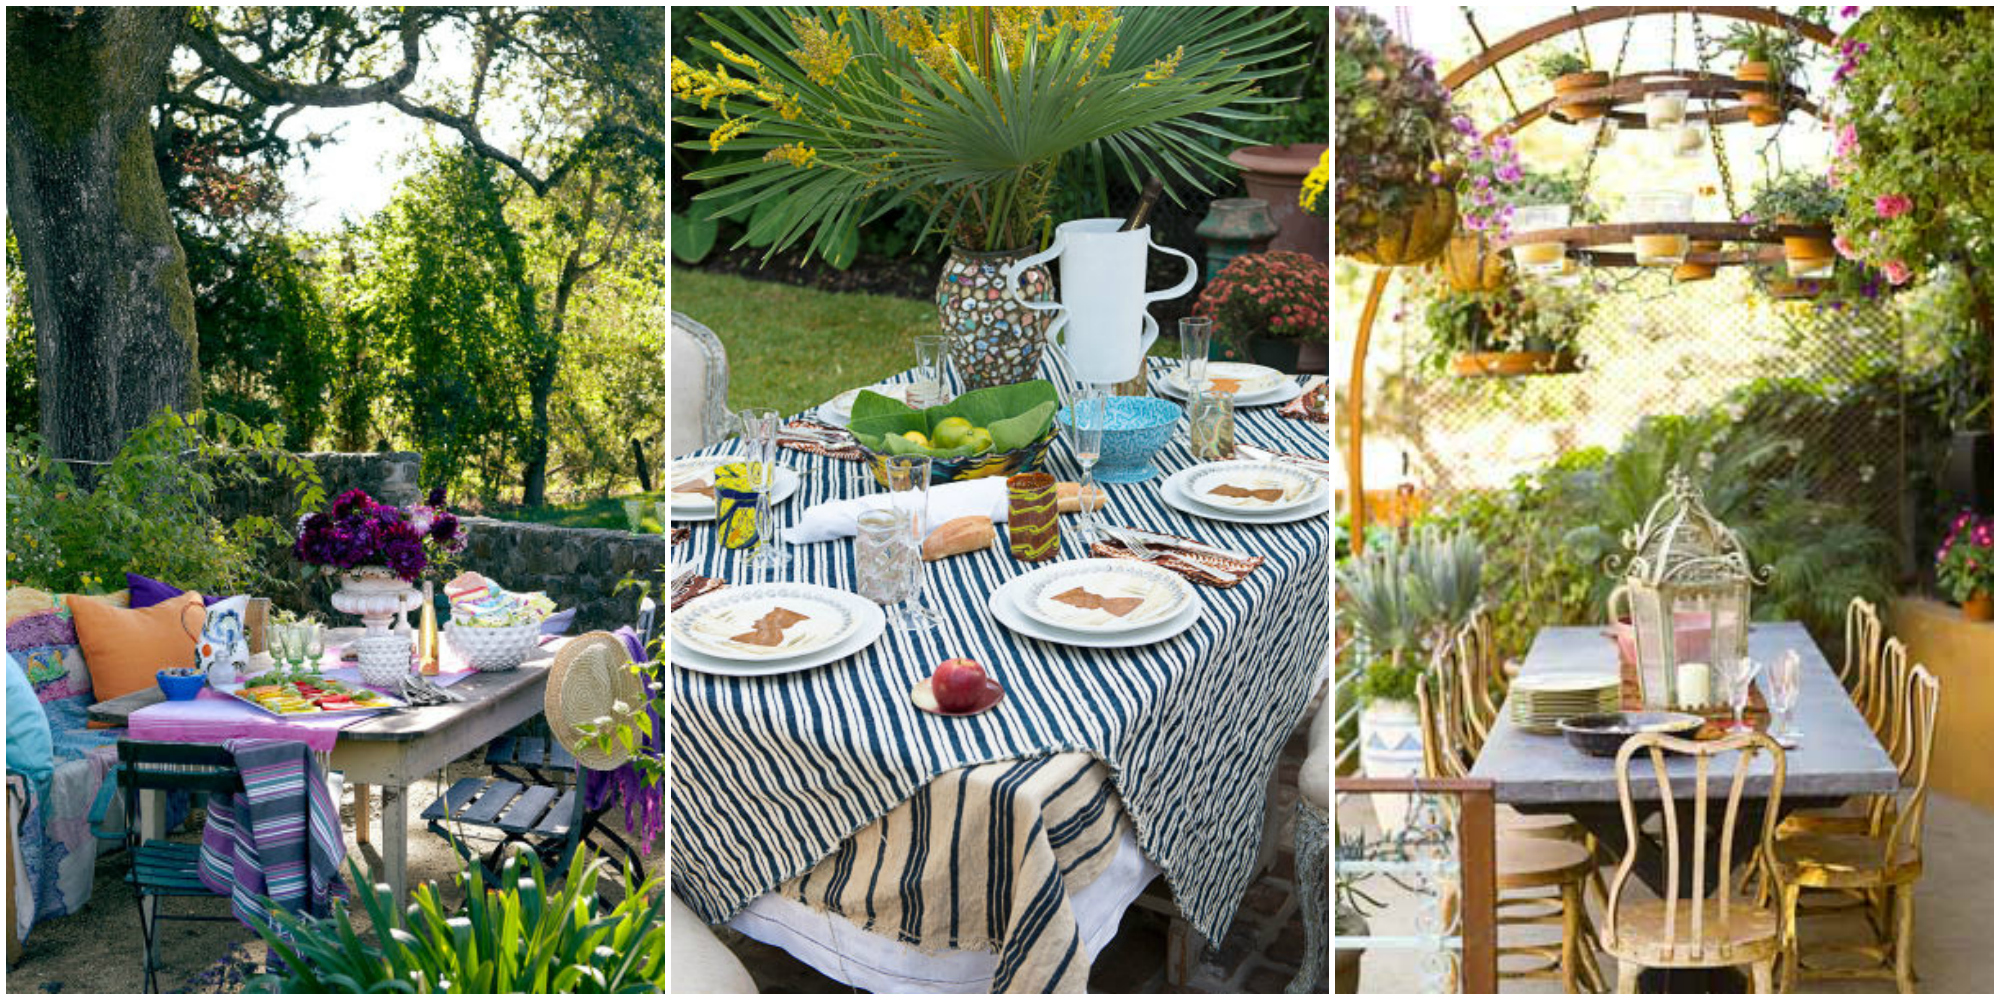 40 fun summer party ideas themes and decorations for for Outdoor dinner party decorating ideas